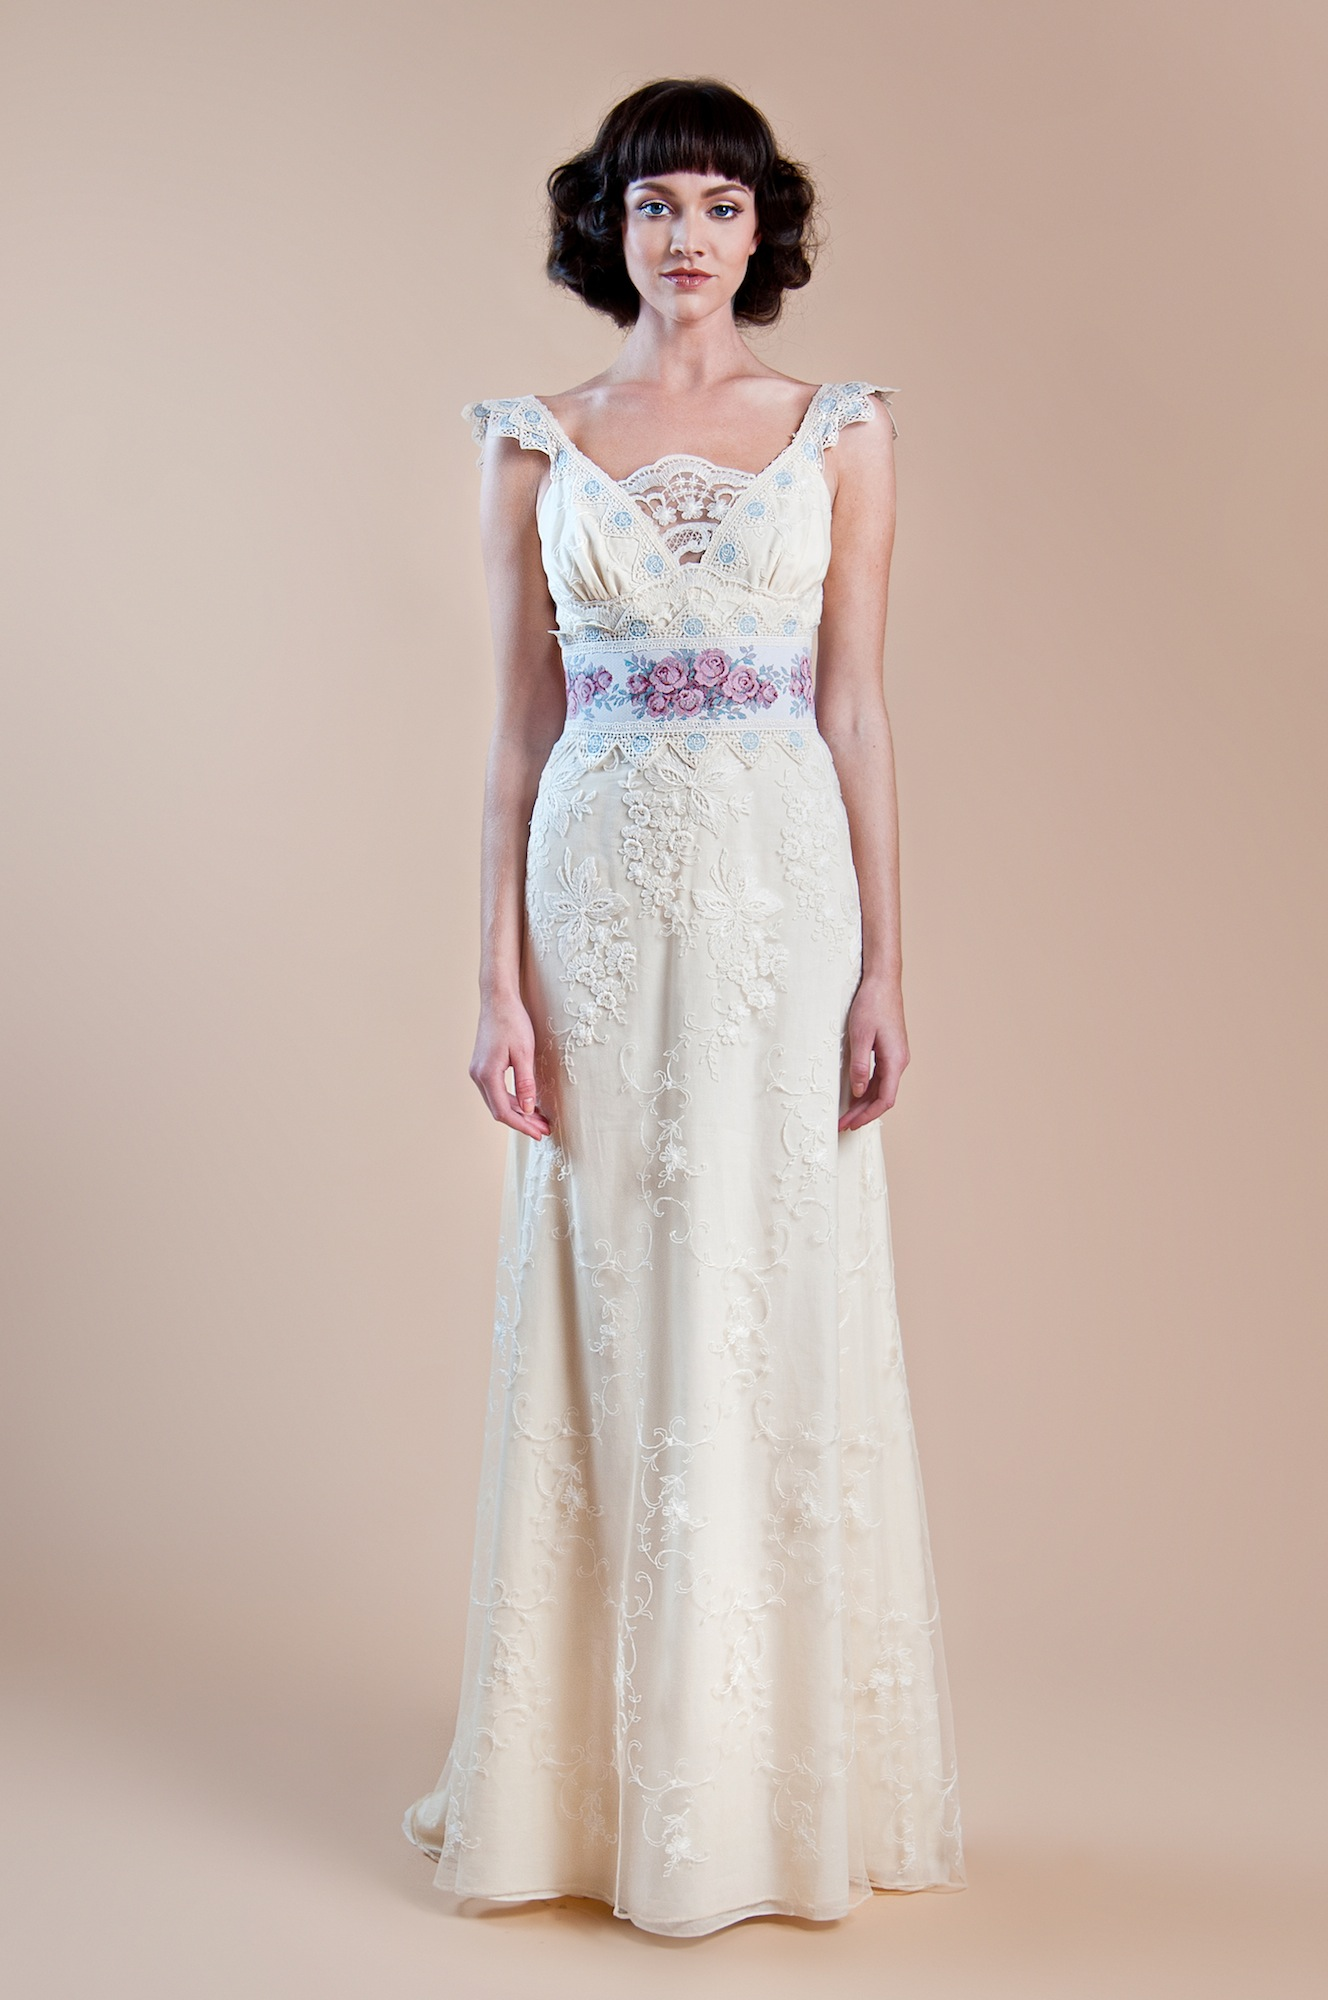 2013 Wedding Dress Claire Pettibone Windsor Rose Collection Waverly2 OneWed